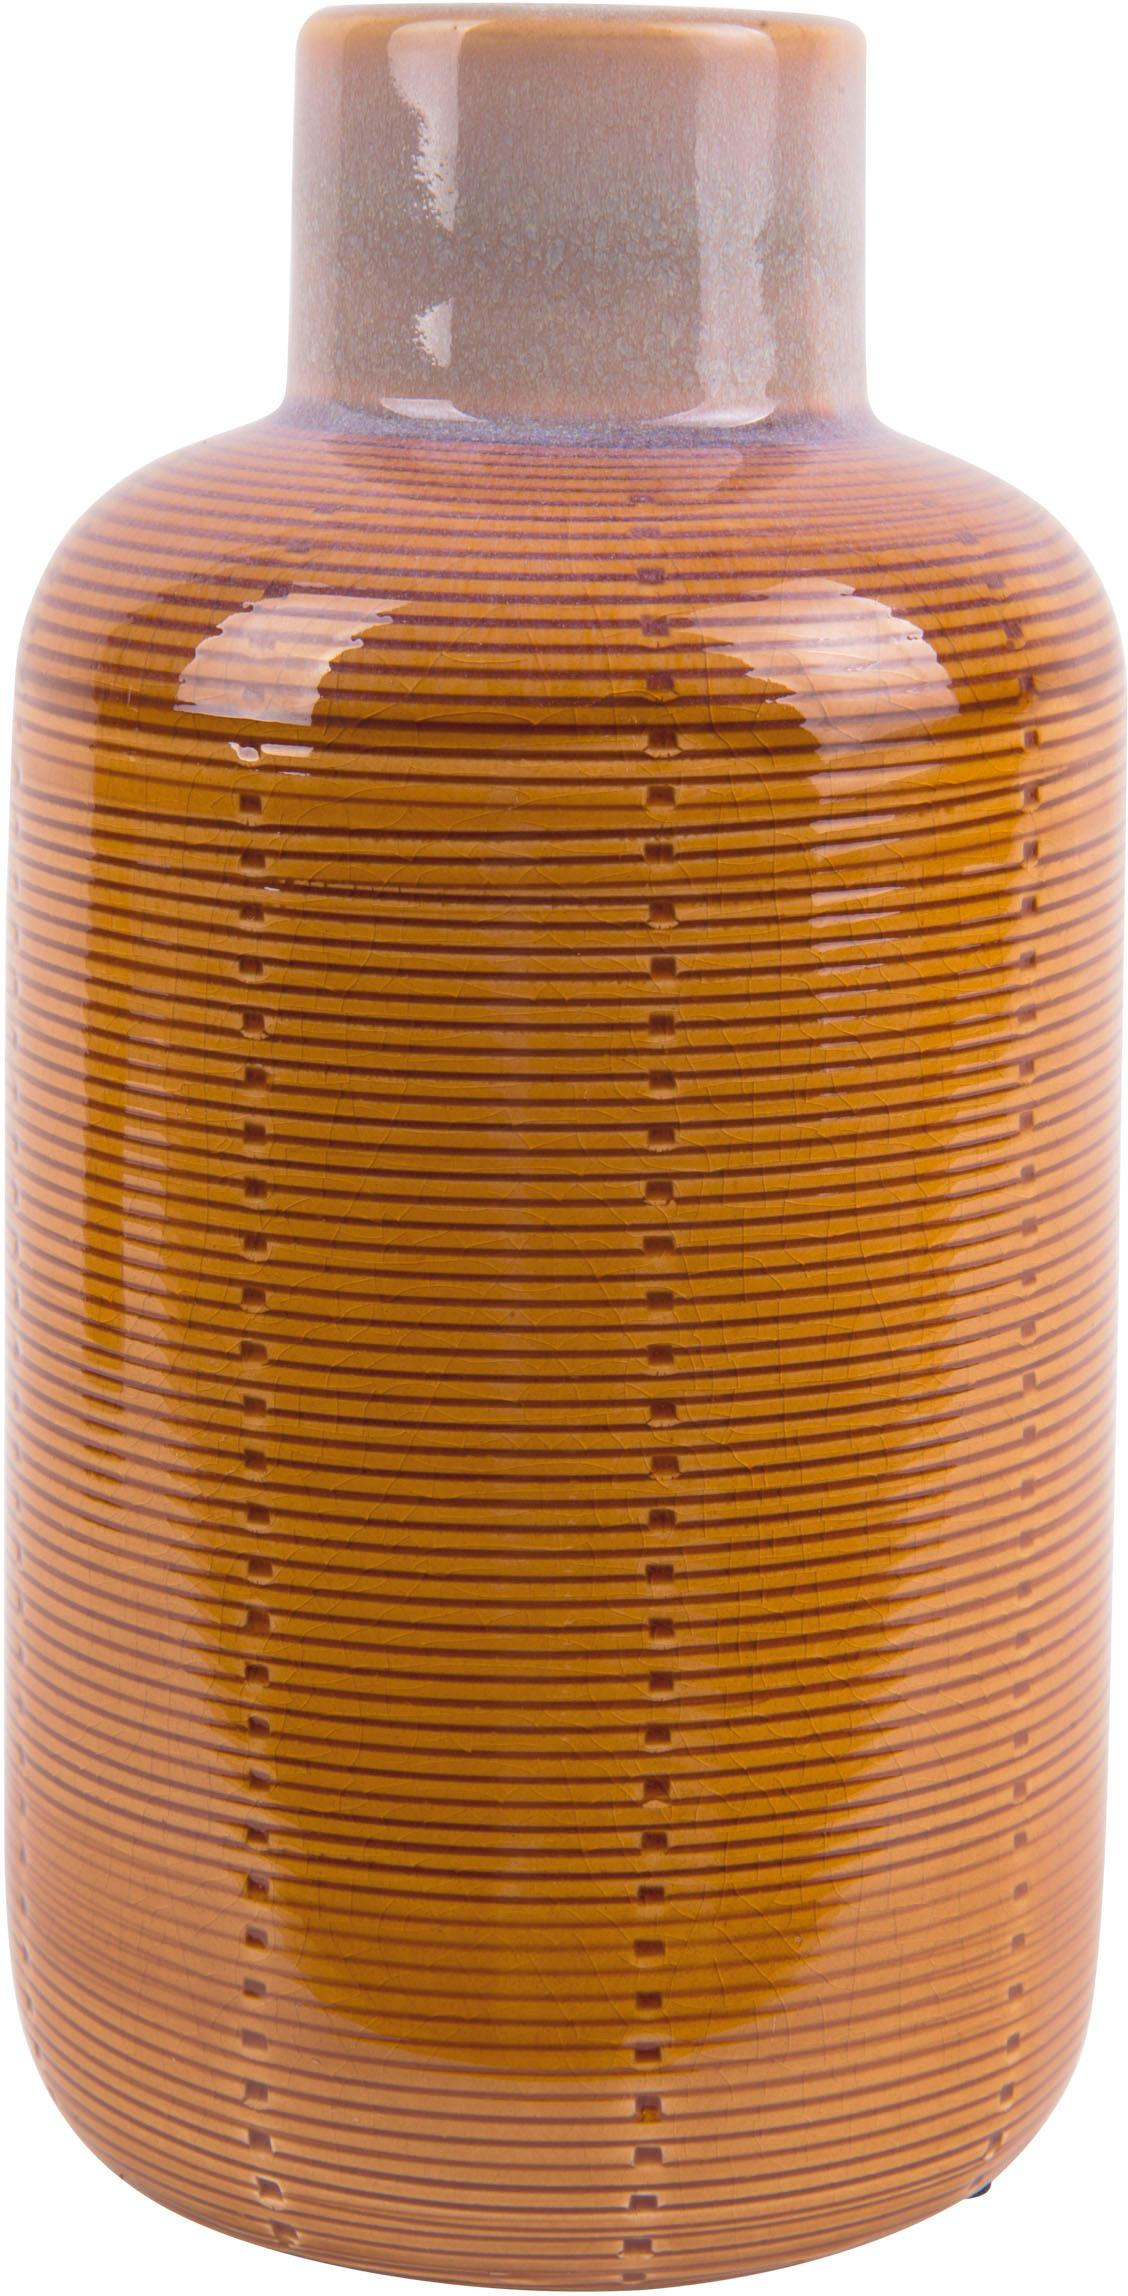 Vase Bottle aus Keramik, Keramik, Orange, Ø 12 x H 23 cm